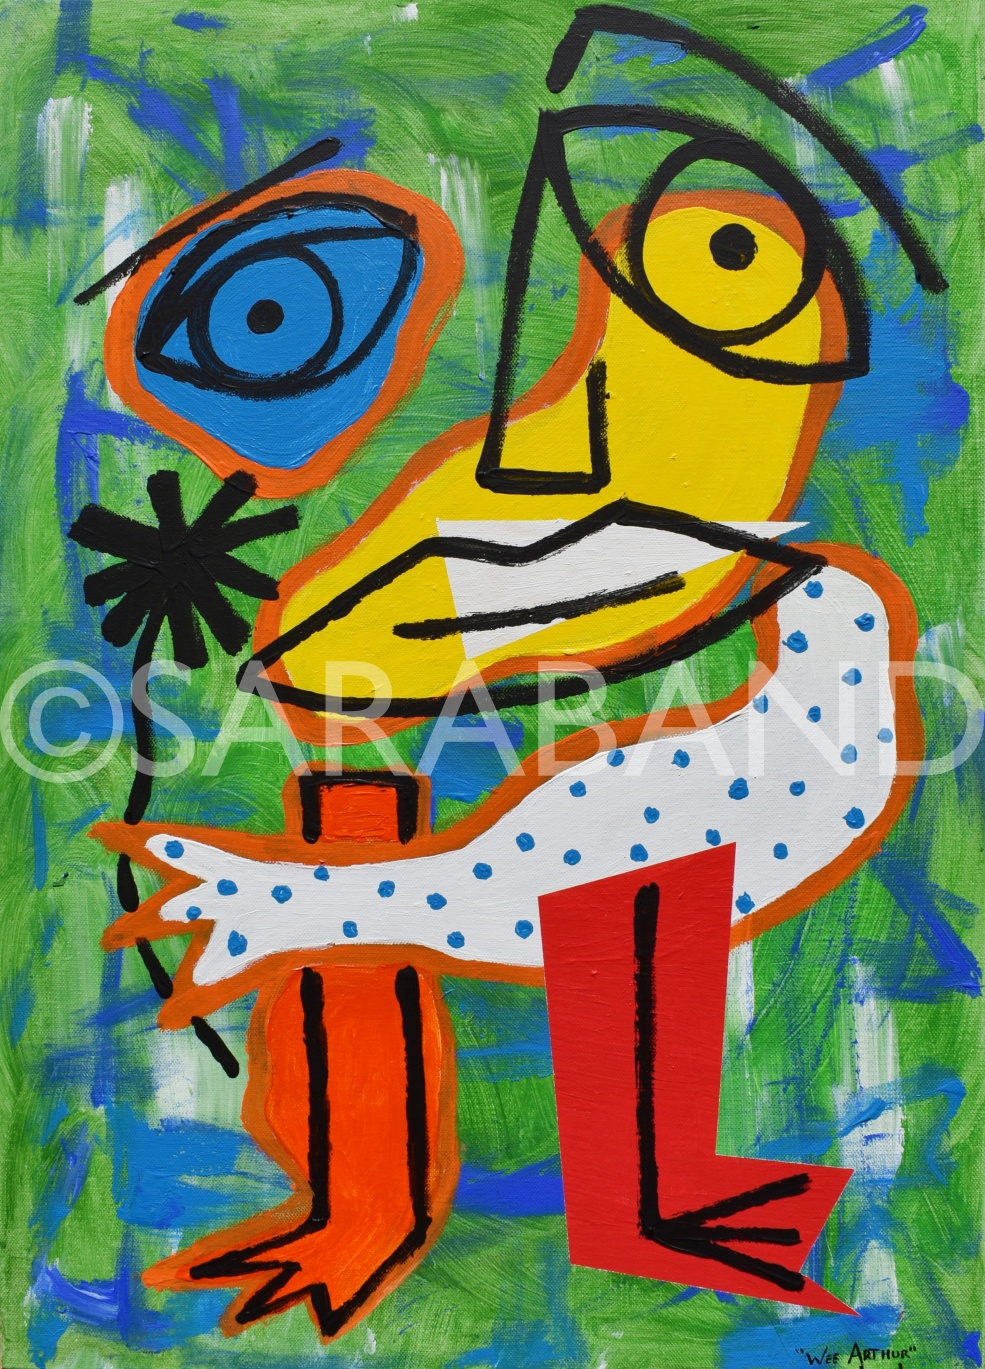 """WEE ARTHUR"" - 70x50cm, acrylic on canvas - £500"